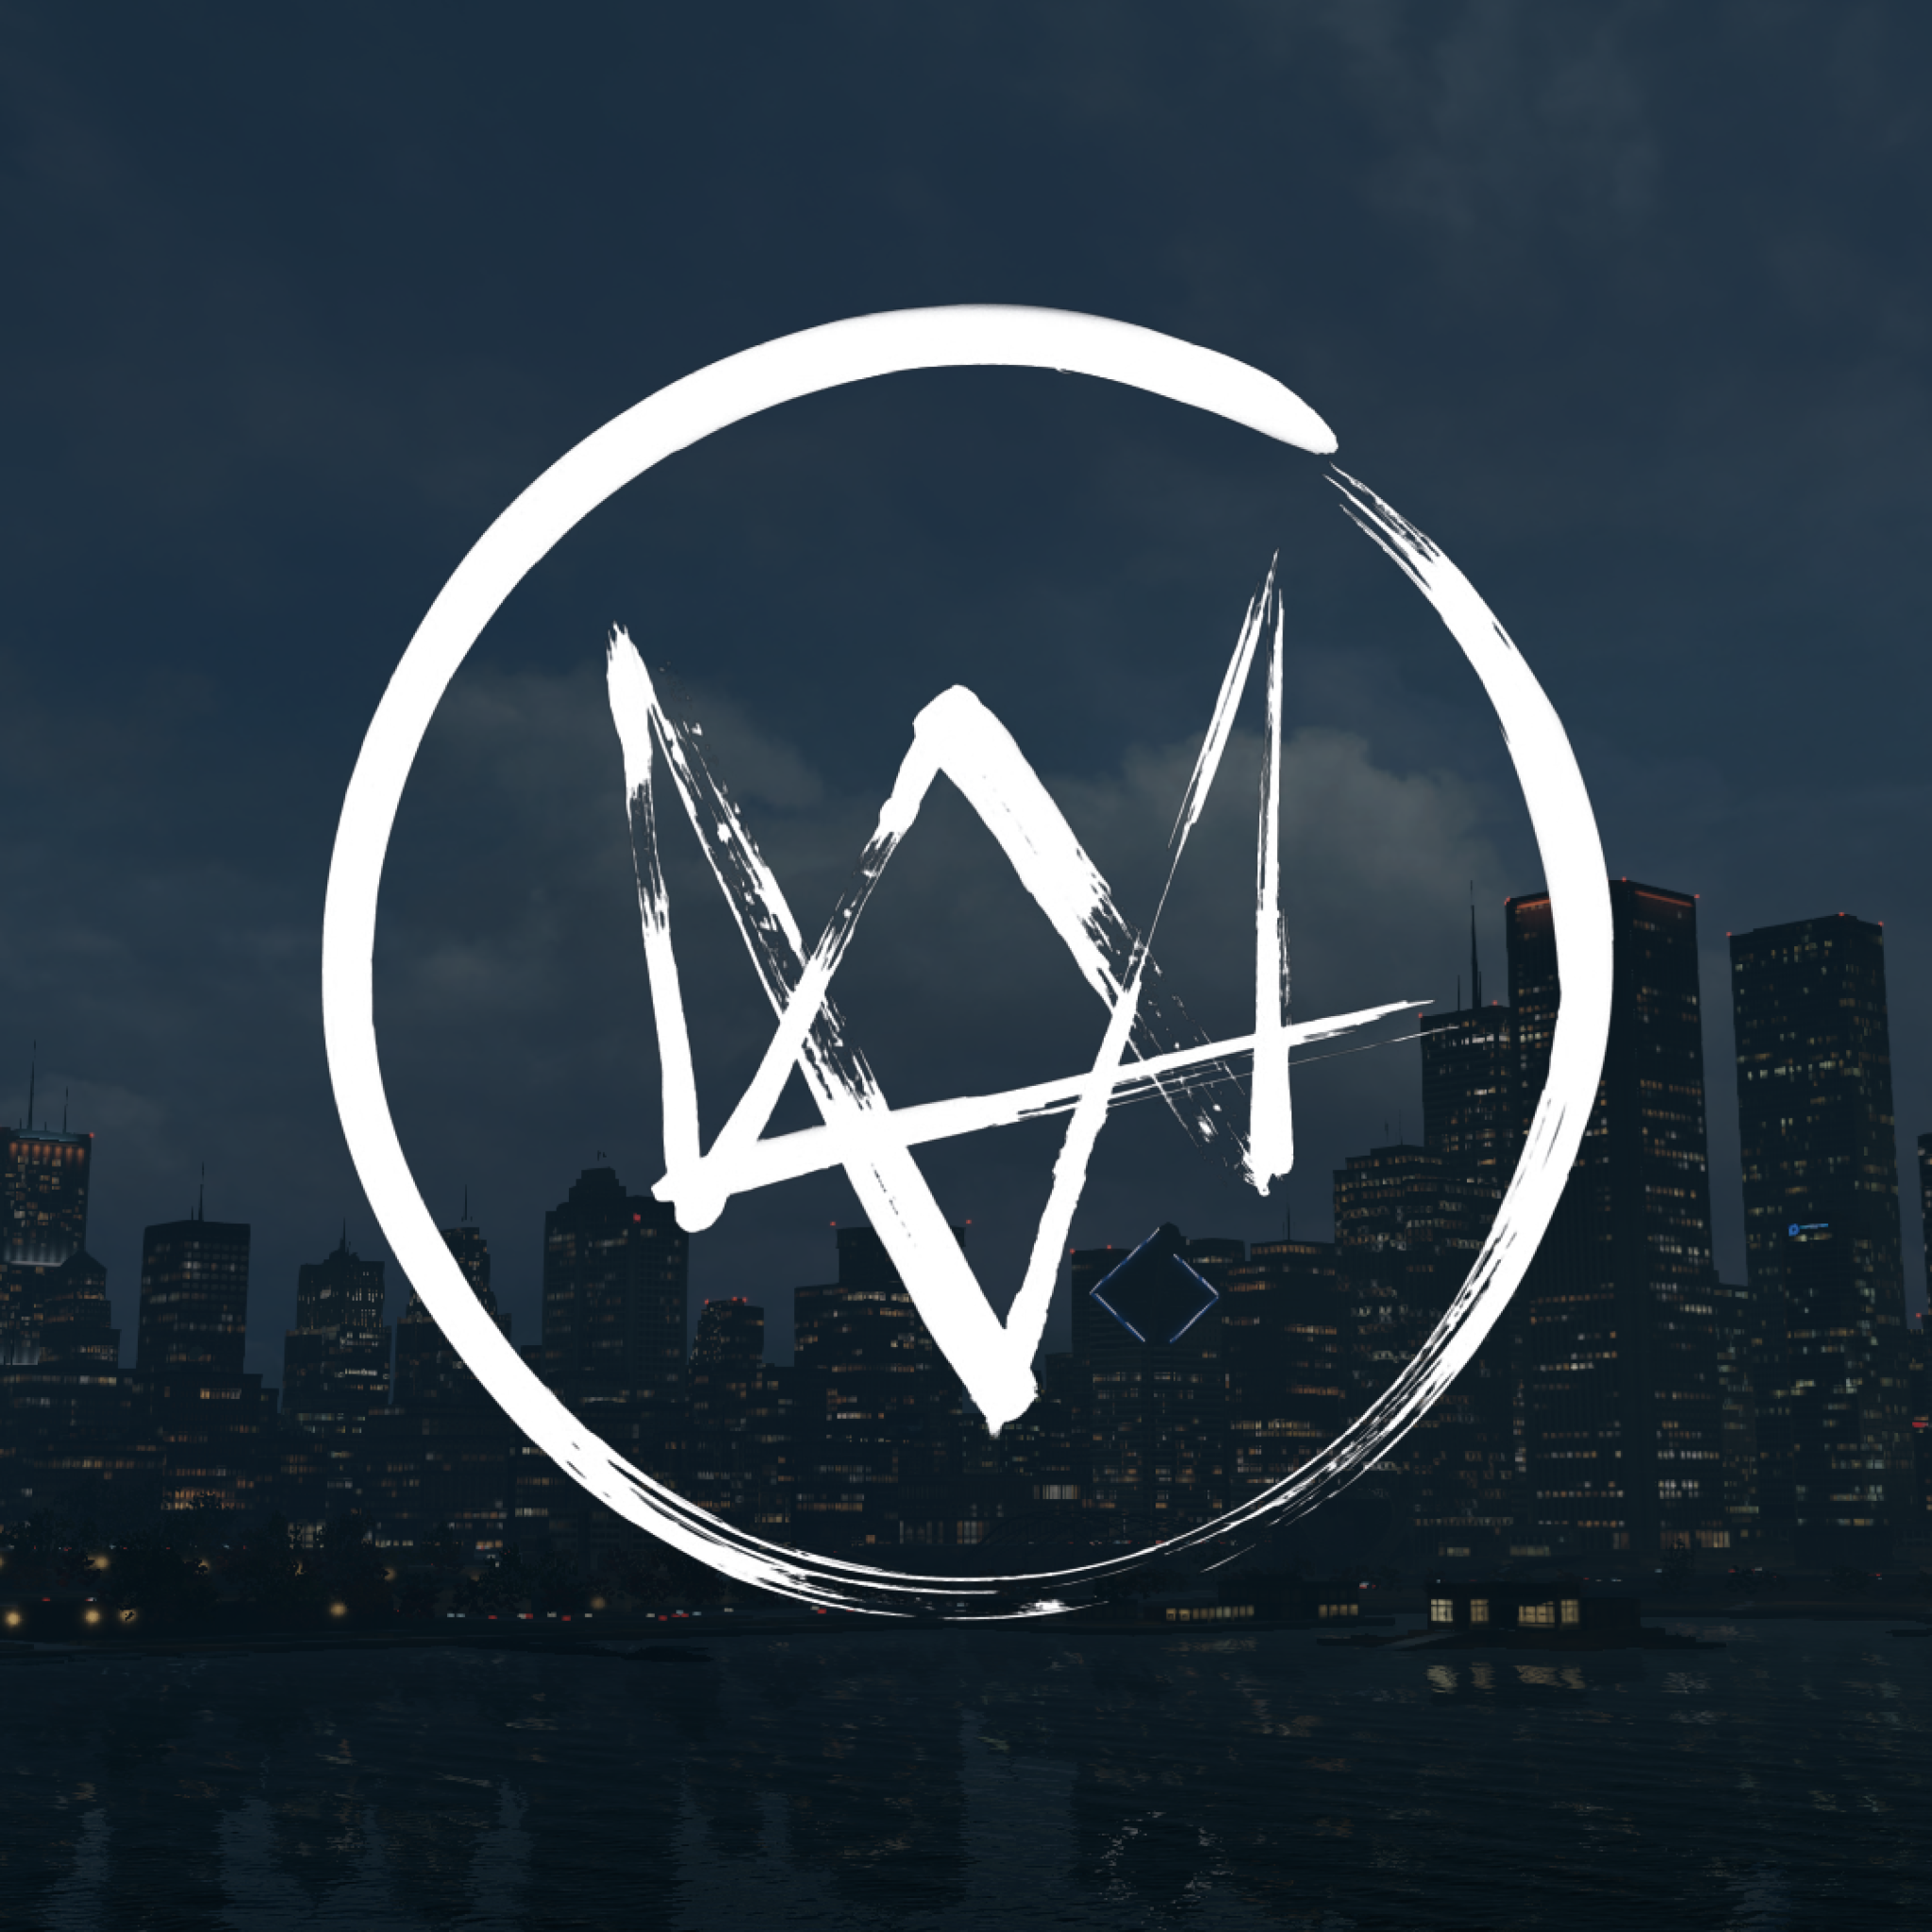 Watch Dogs Tap To See Awesome Watch Dog Wallpapers Mobile9 Dog Wallpaper Watch Dogs Watch Dogs 1